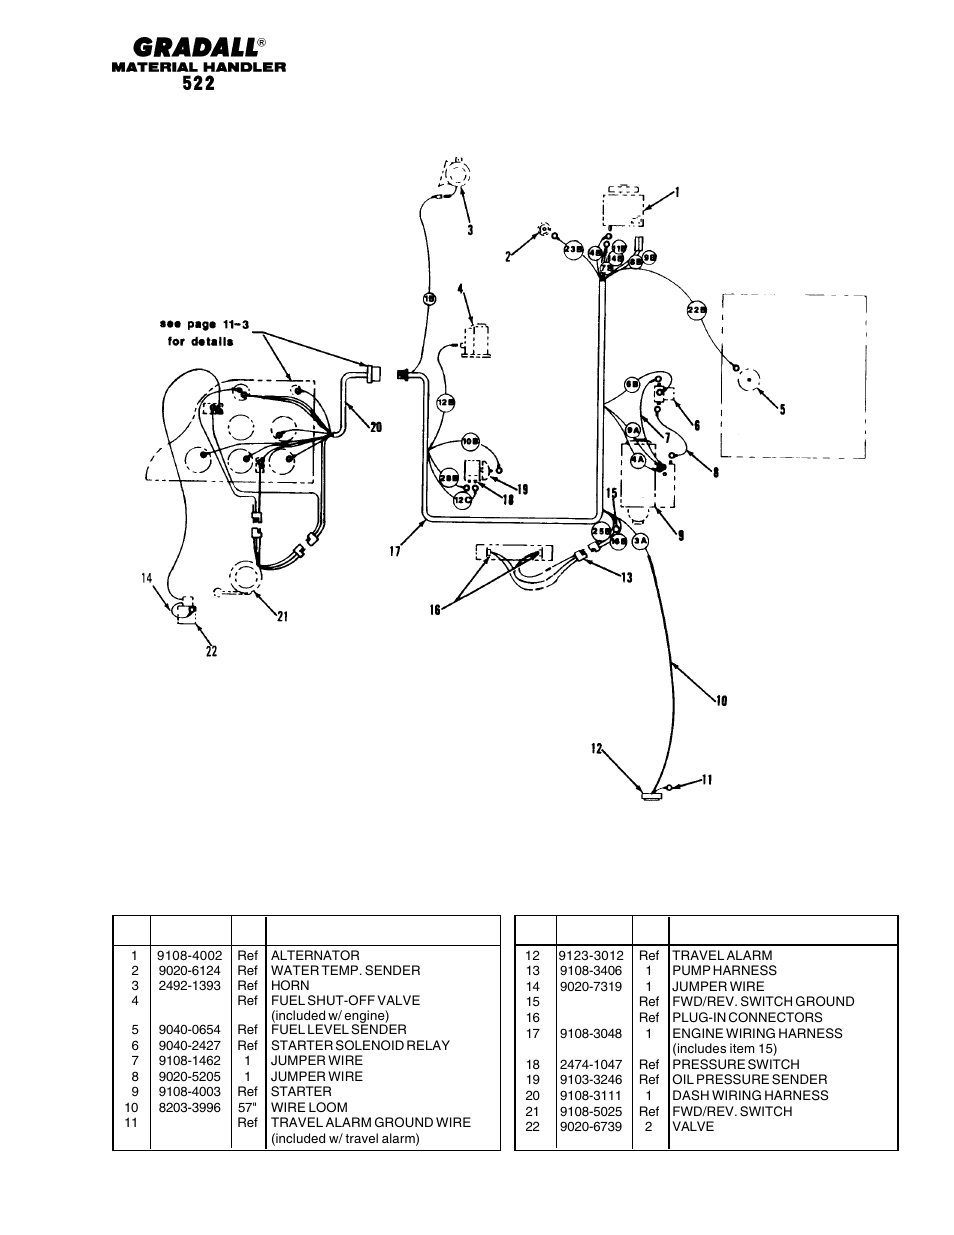 hight resolution of section 11 electrical electrical engine wiring 522 gradall 524 parts manual user manual page 200 312